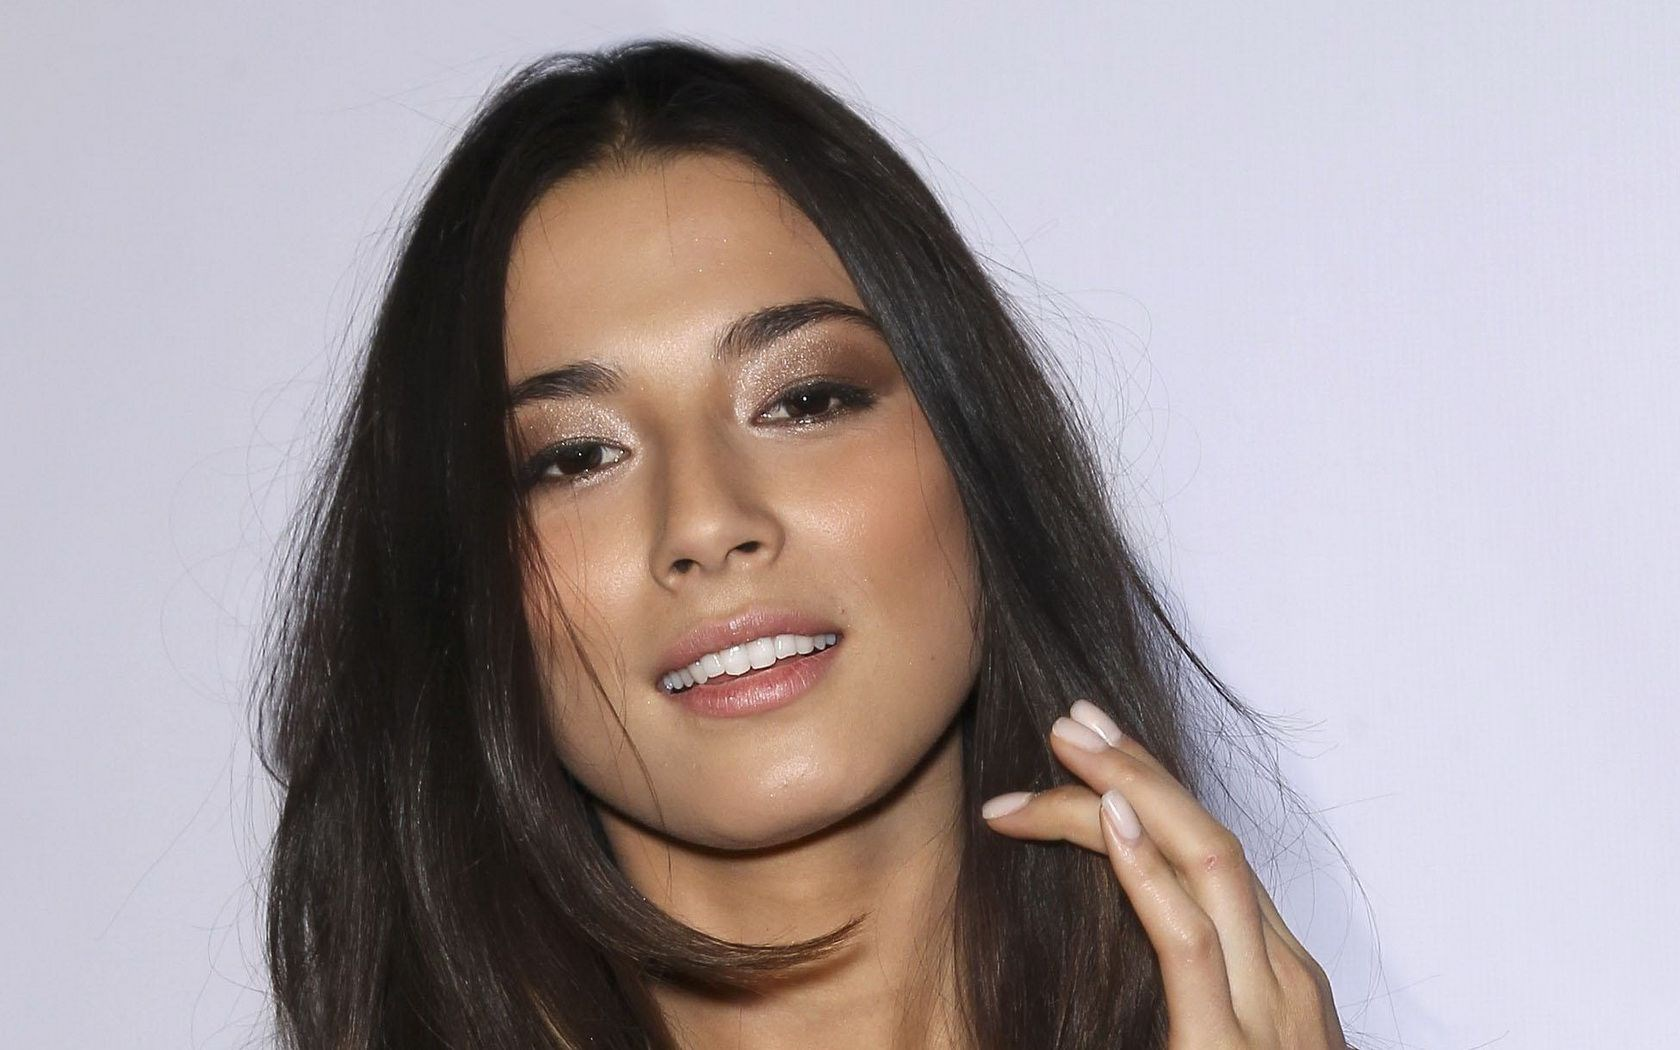 1680x1050 - Jessica Gomes Wallpapers 14